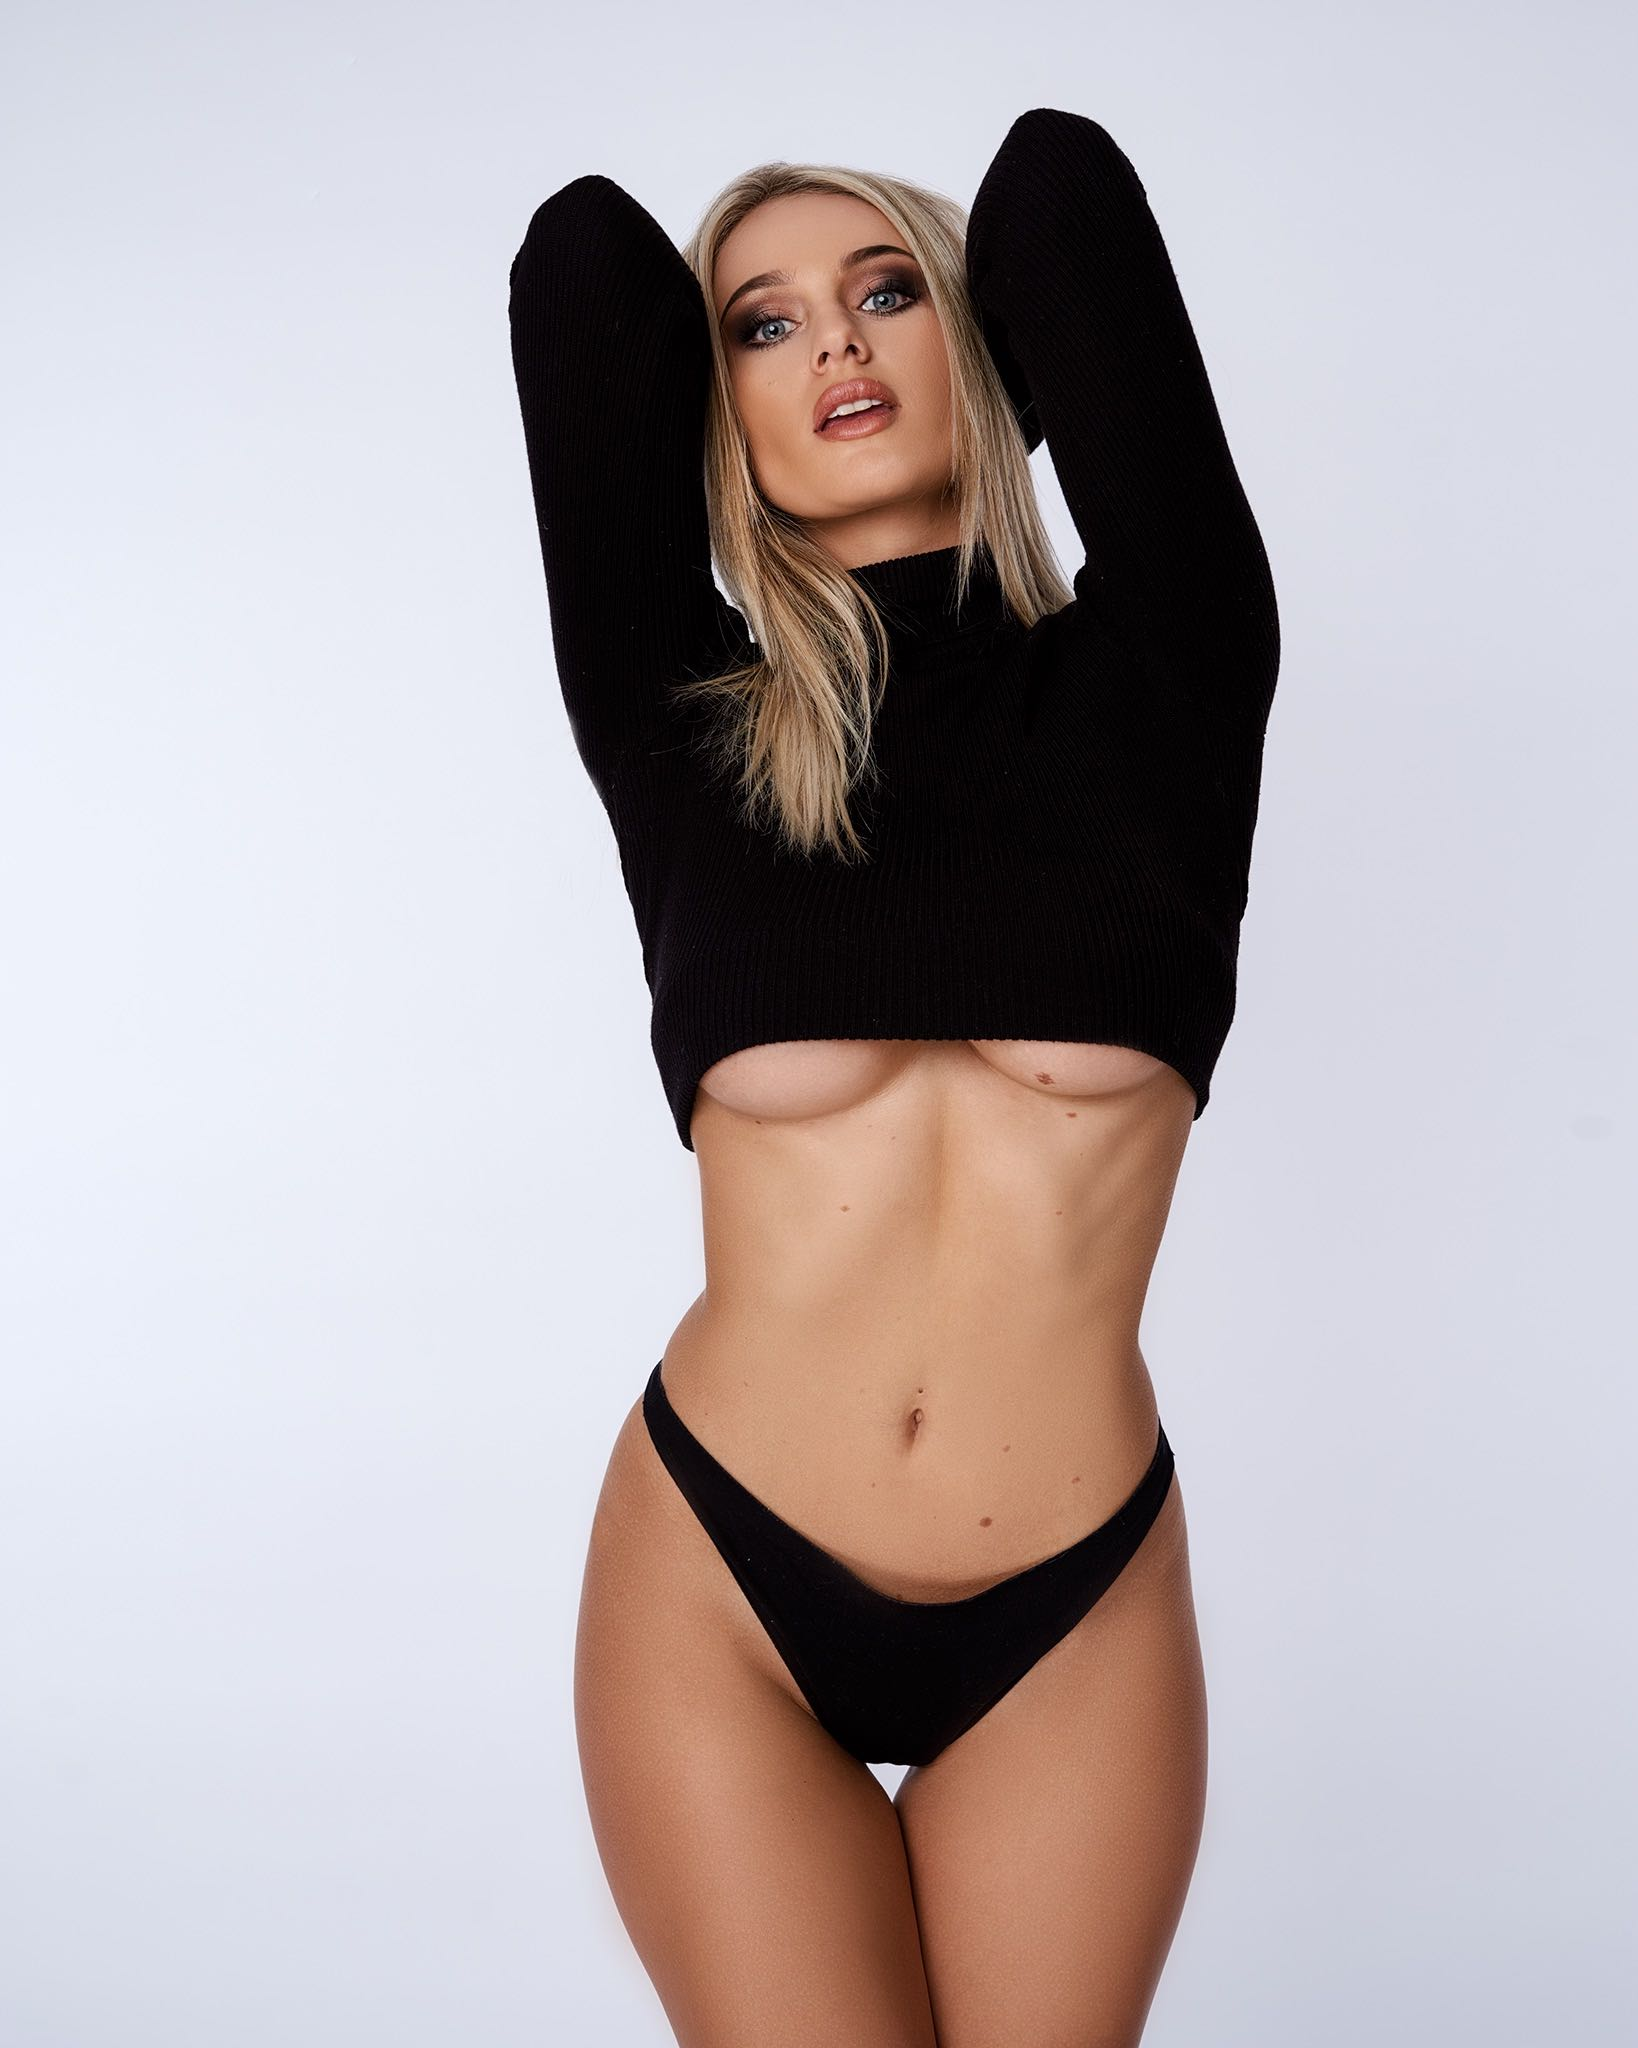 Meet Serren Williams in our South African Babes feature